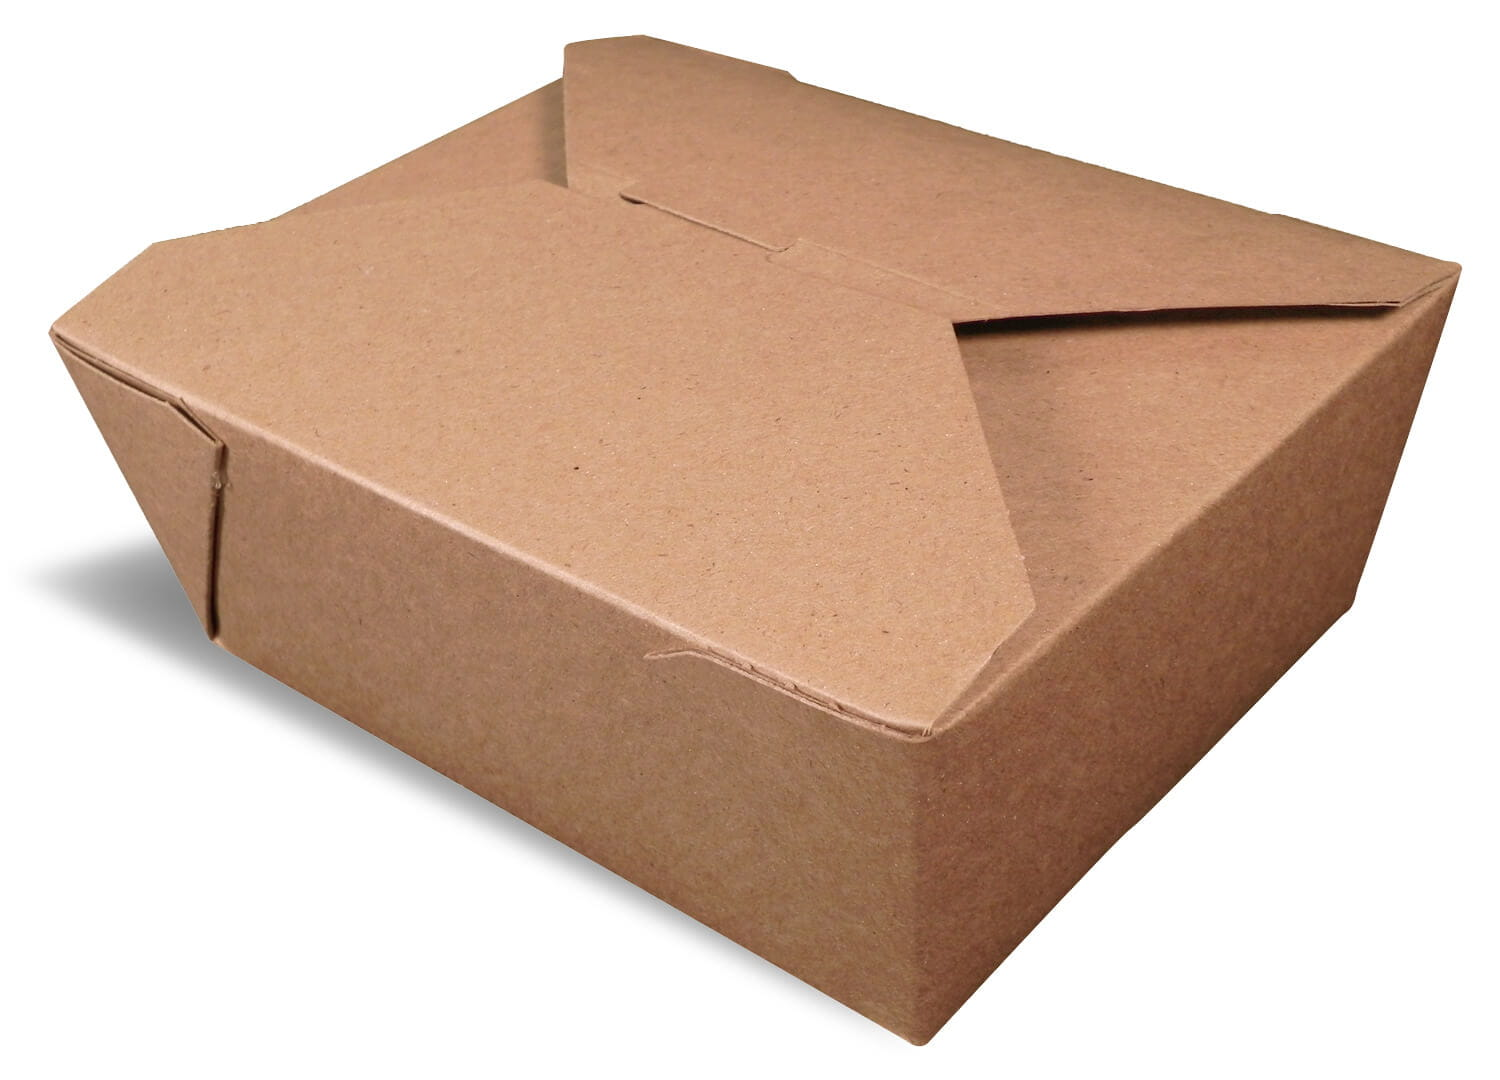 A brown rendering of a closed Bio-Plus earth folding carton container.